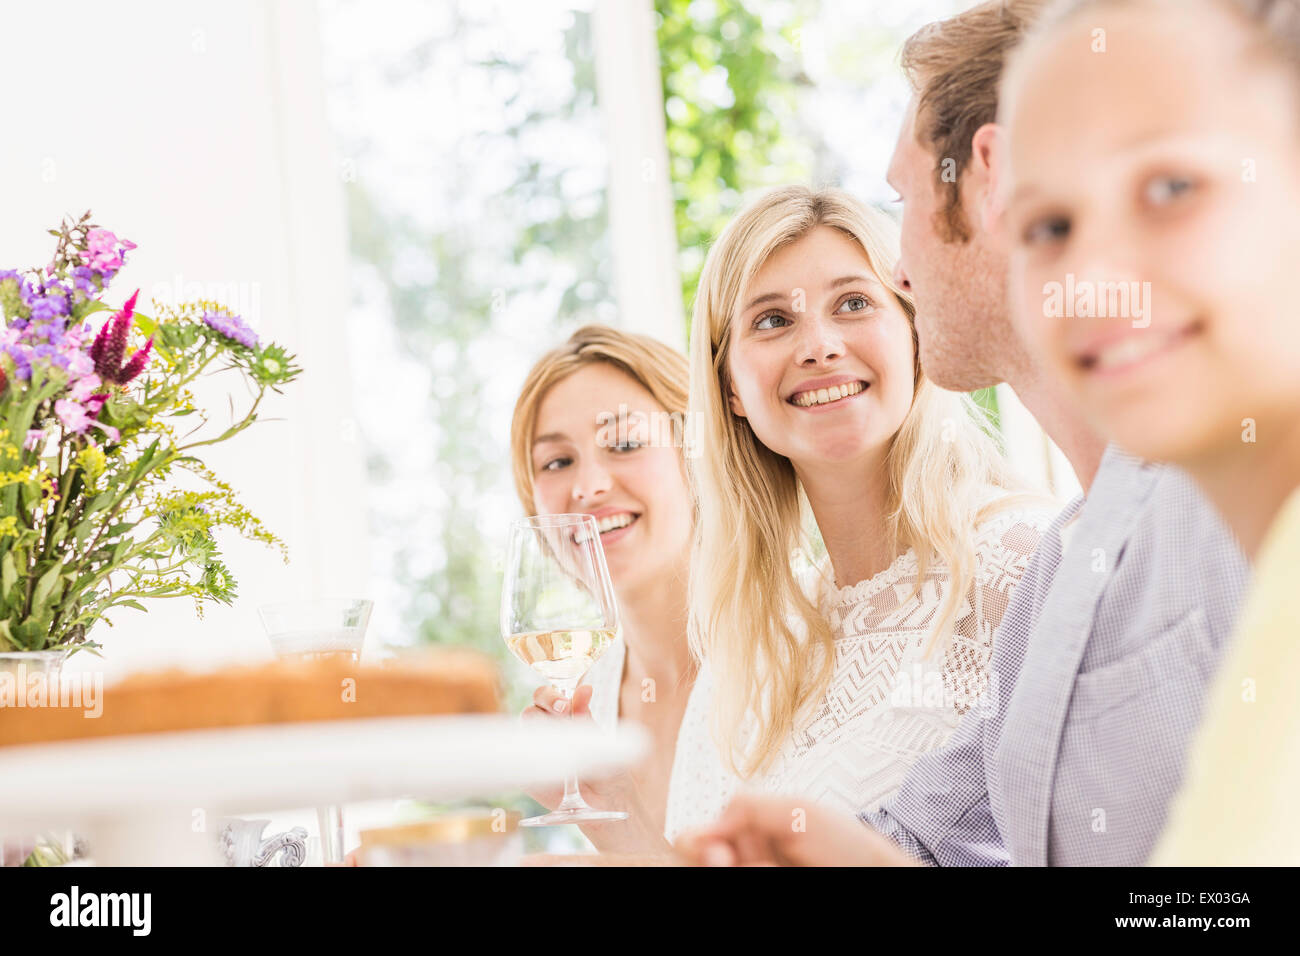 Fille et adultes at Birthday party Photo Stock